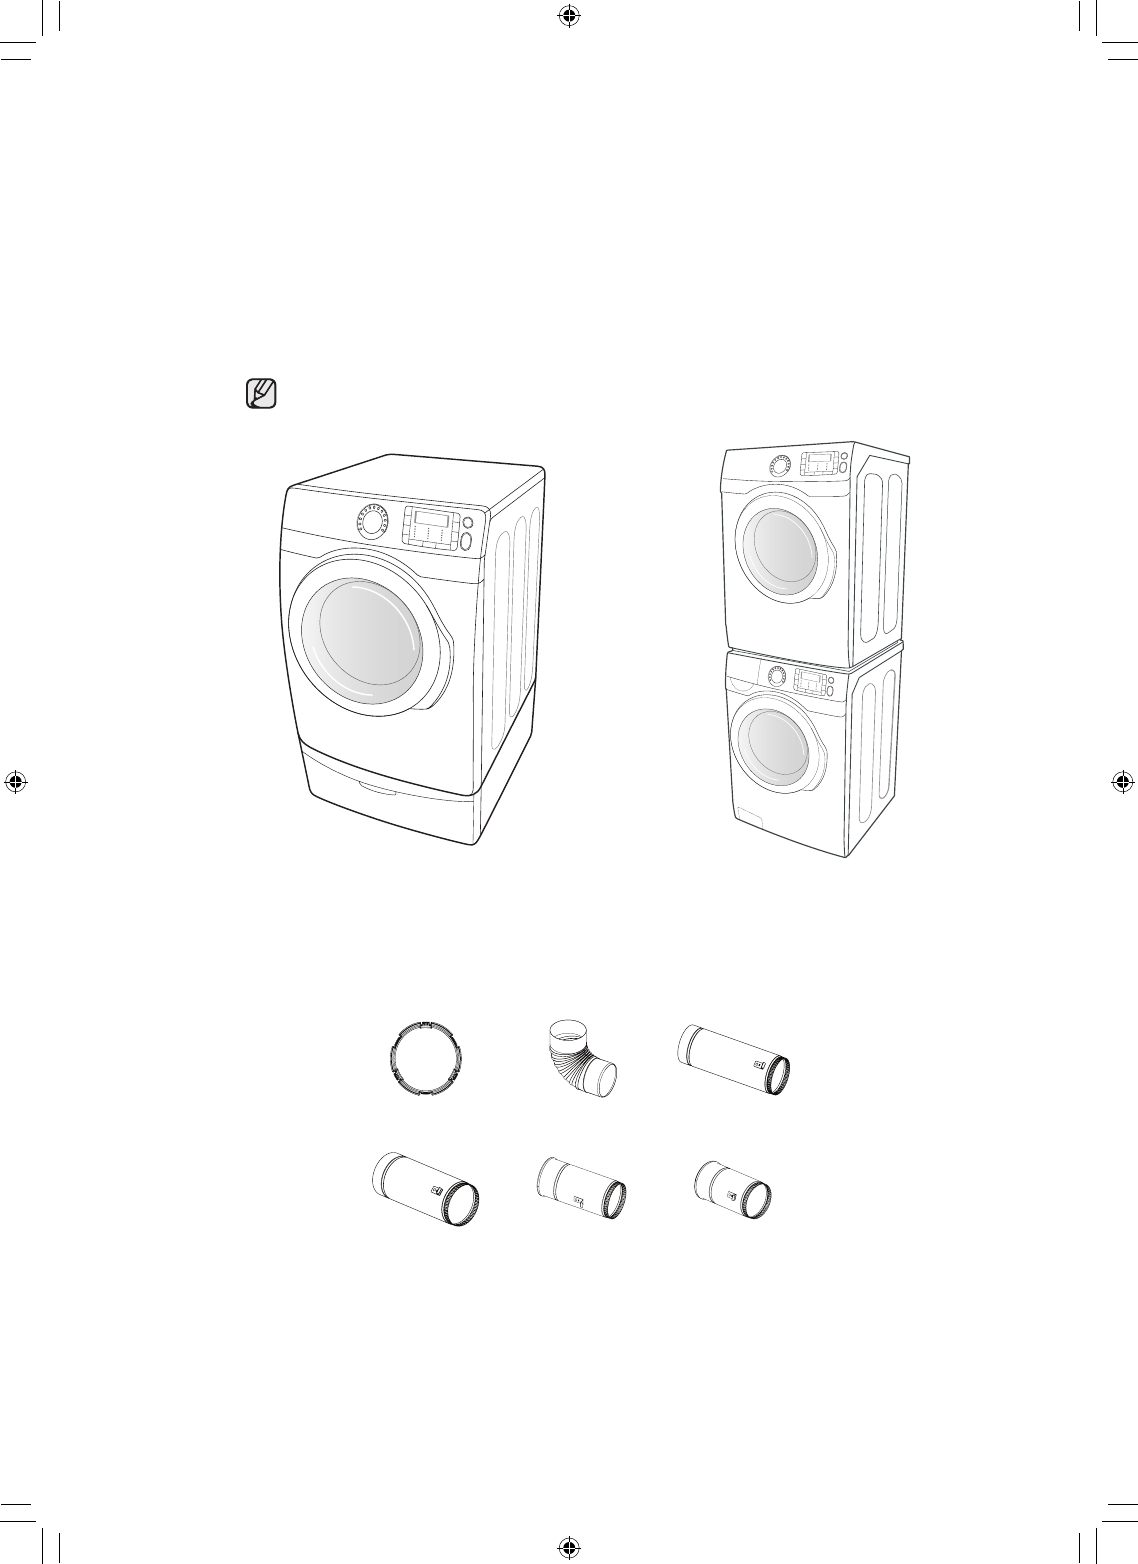 Page 3 of Samsung Clothes Dryer DC68-02836B User Guide